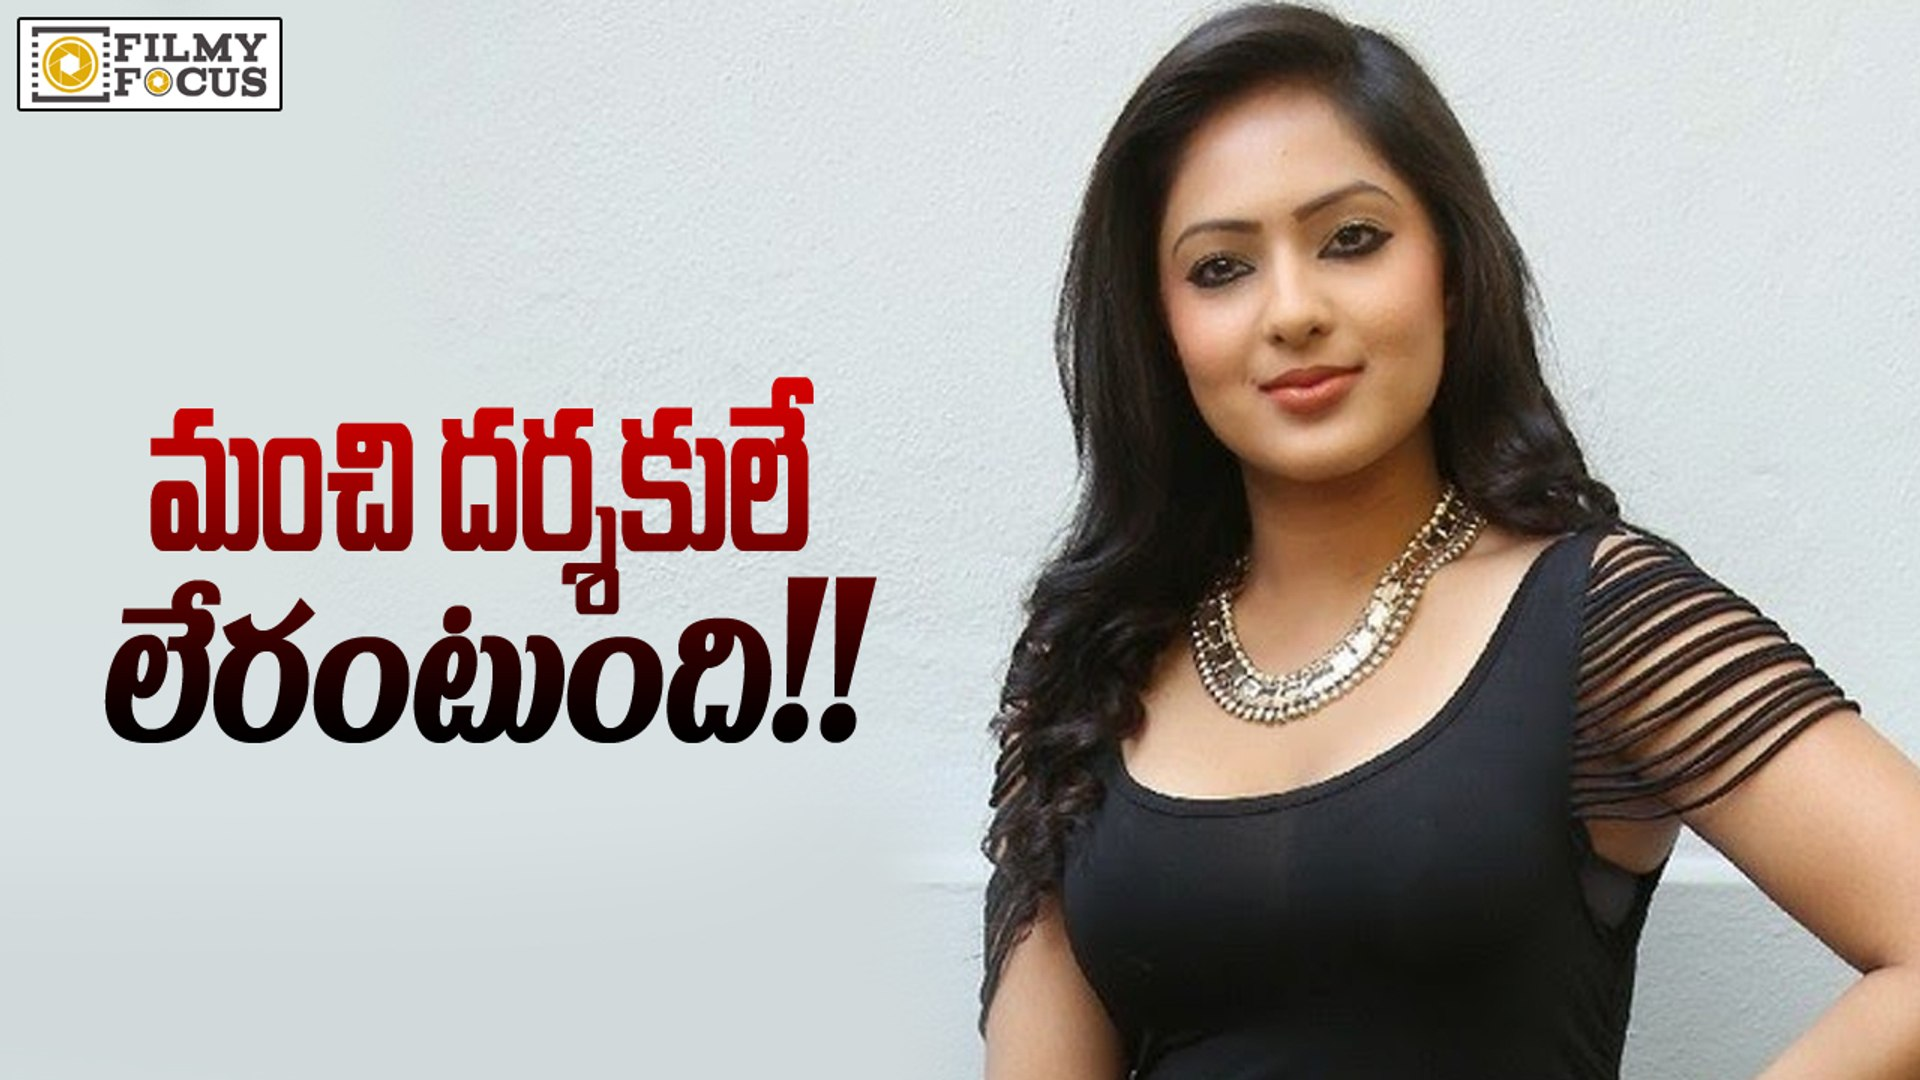 Nikesha Patel Controversial Comments on Directors - Filmy Focus